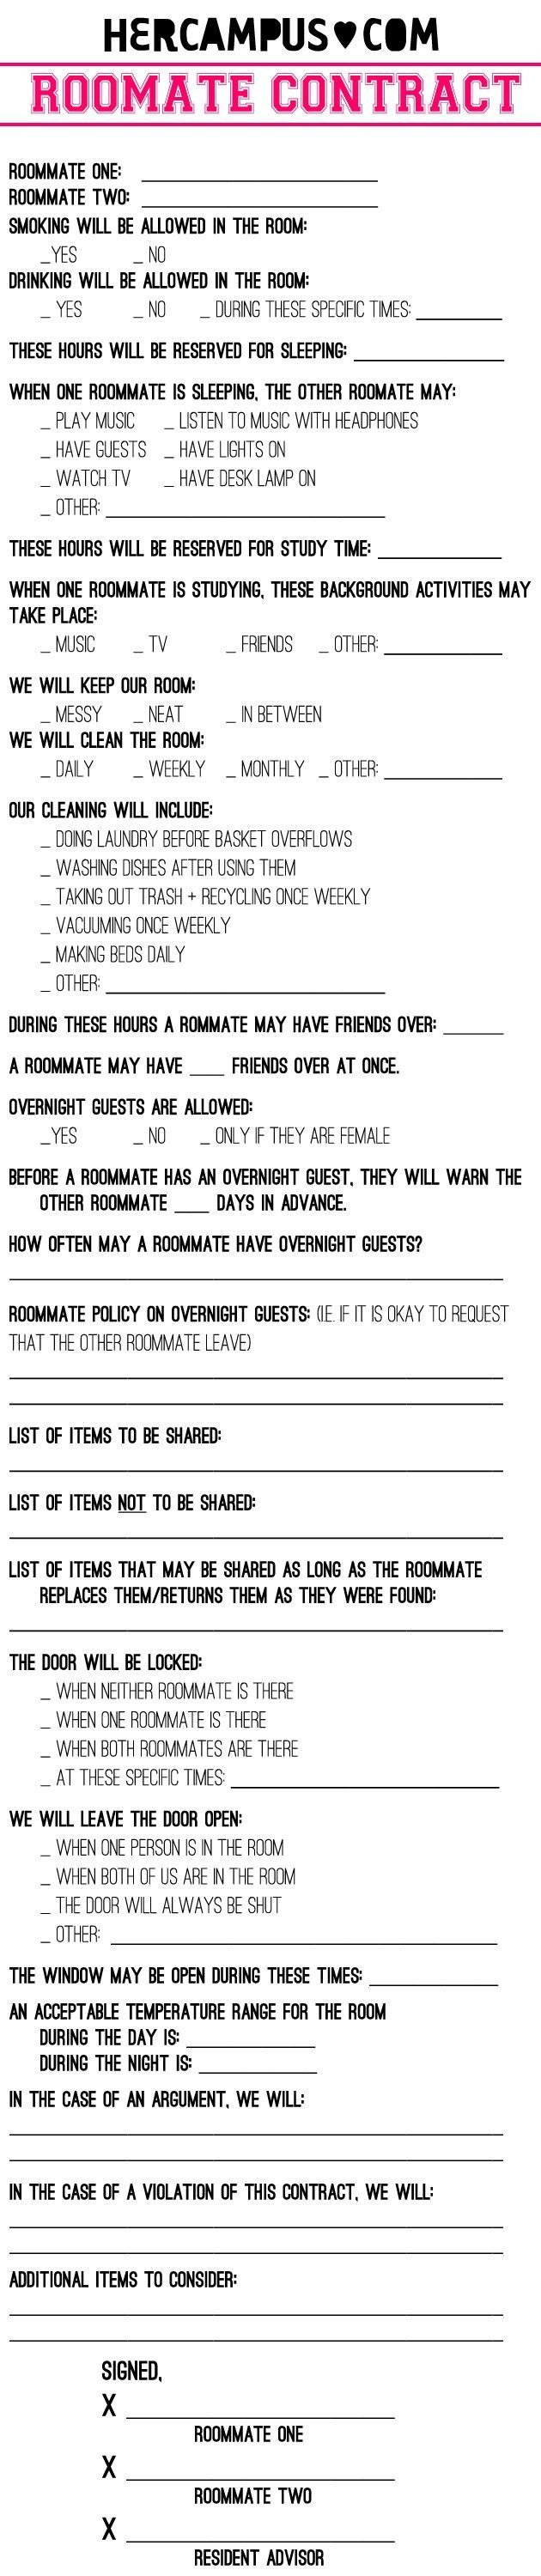 College Roommate Contract Template Should You Make A Roommate Contract Plus A Roommate